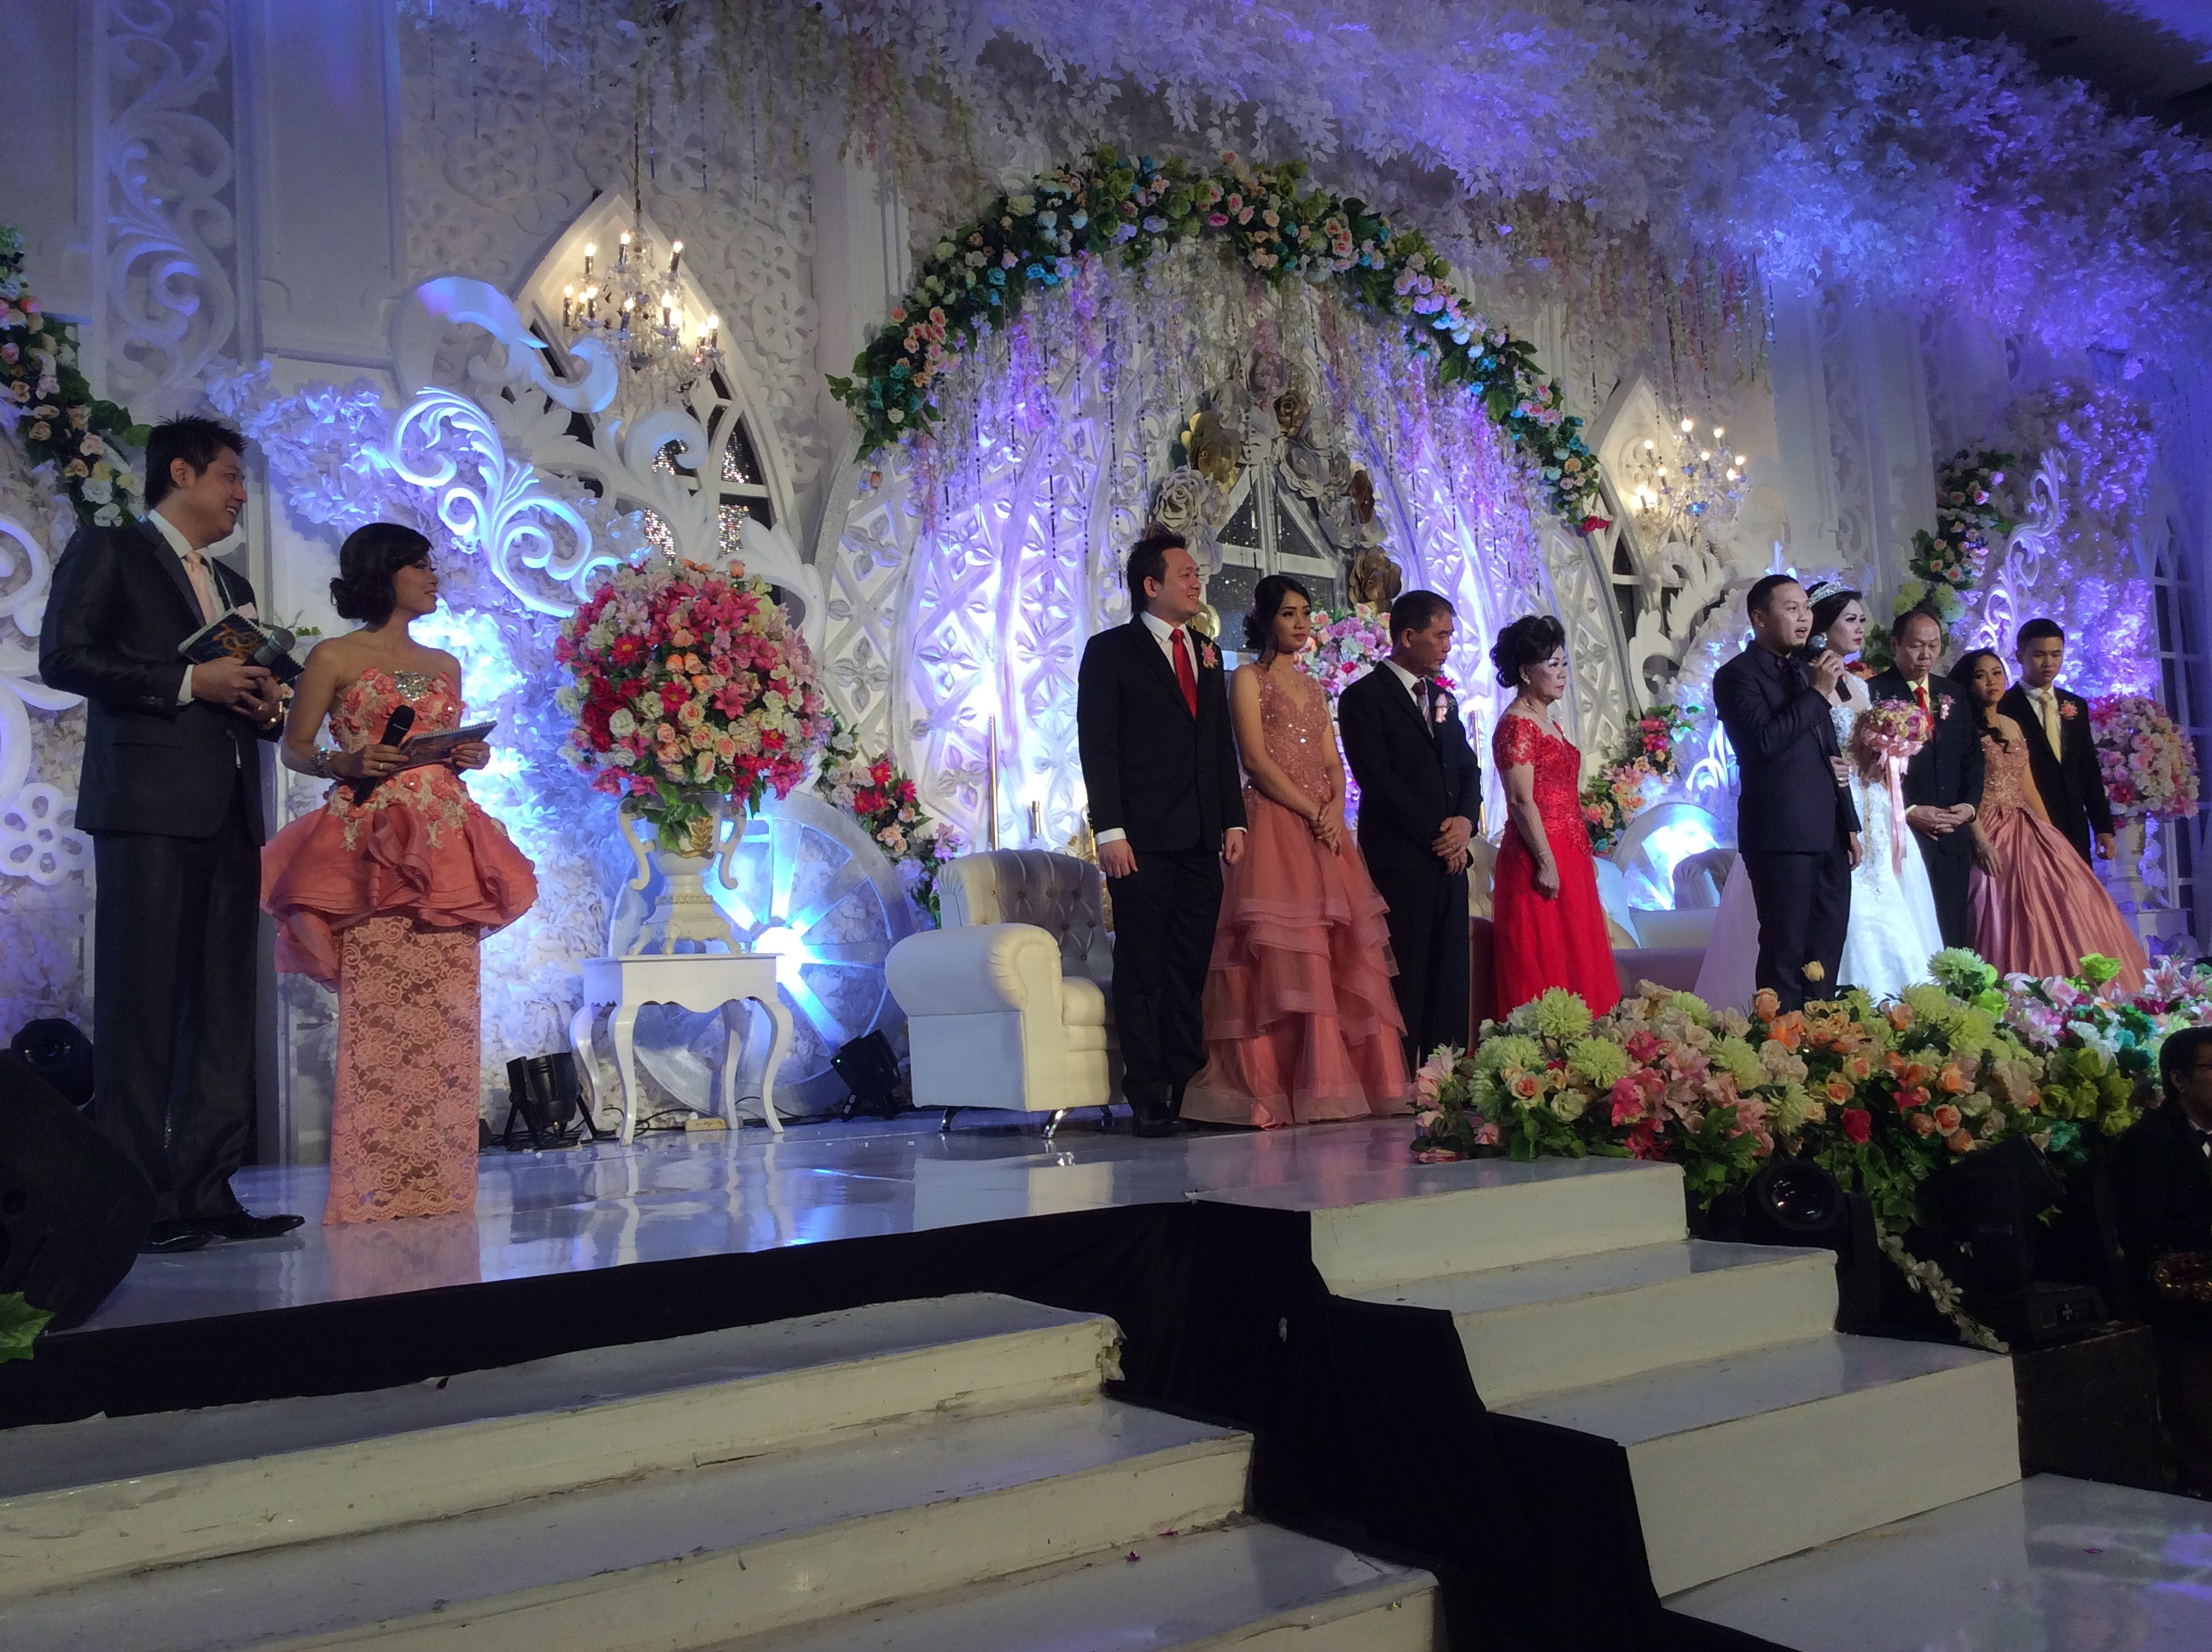 Outdoor wedding decoration semarang all the best ideas about marriage wedding decoration semarang image collections wedding junglespirit Images